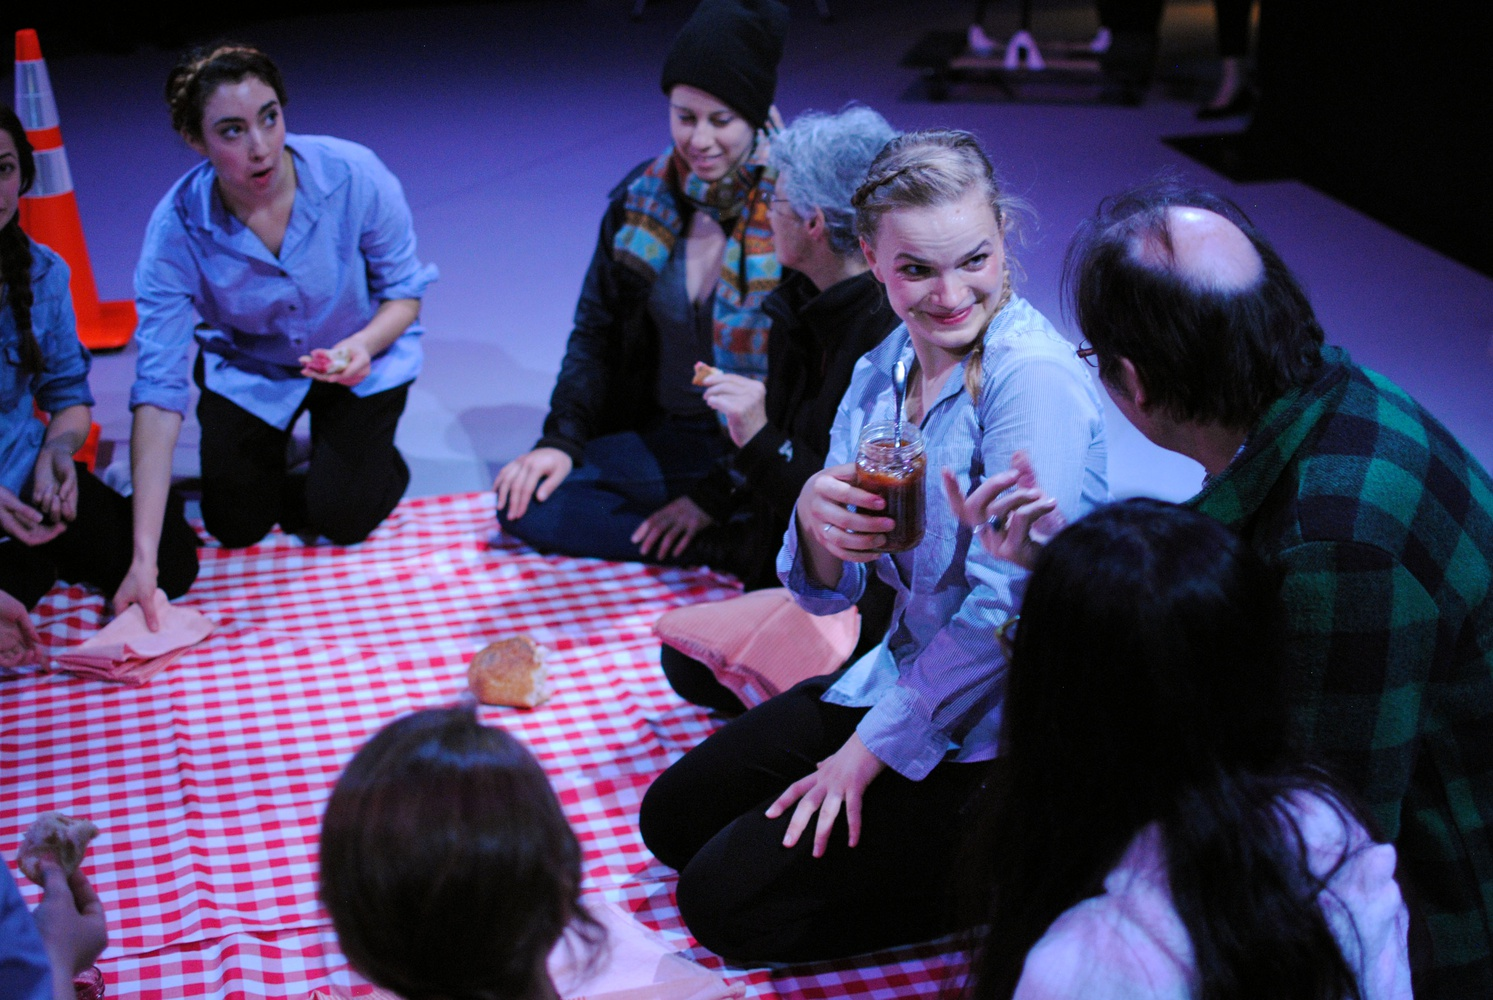 """Liza Batkin '15 offered jam to an attendee during the opening of the Harvard Dance Project's """"LOOK UP"""" in November. At one stage of the installation, dancers invited attendees to sit and eat bread."""